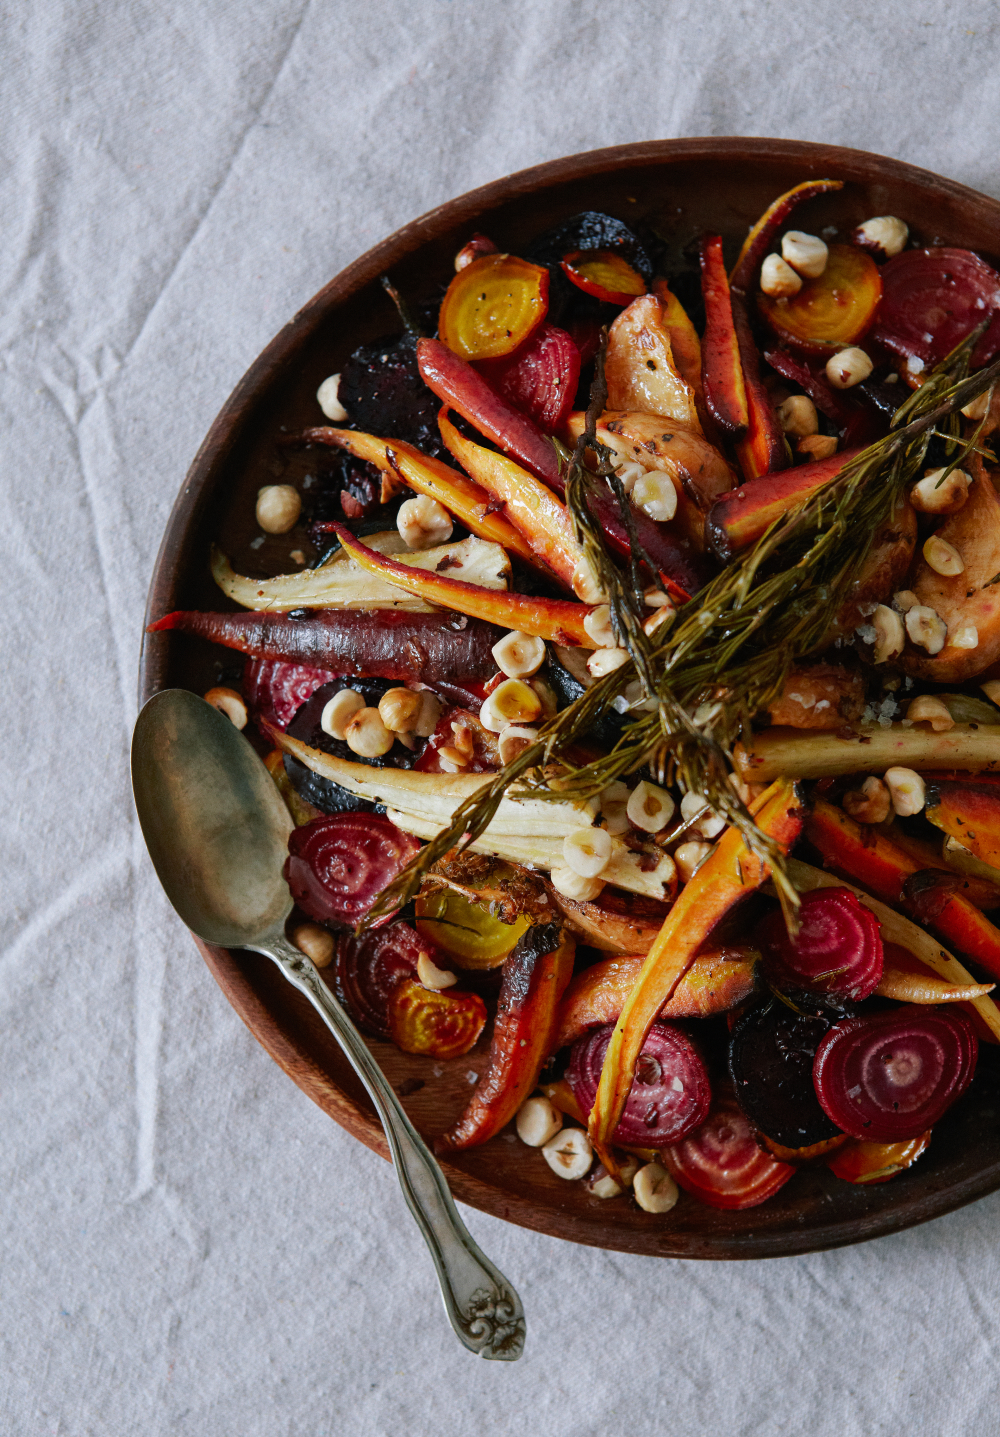 Halloween Dinner Party Menu Ideas Part - 22: Autumnal Roasted Root Vegetables With Orange Vinaigrette